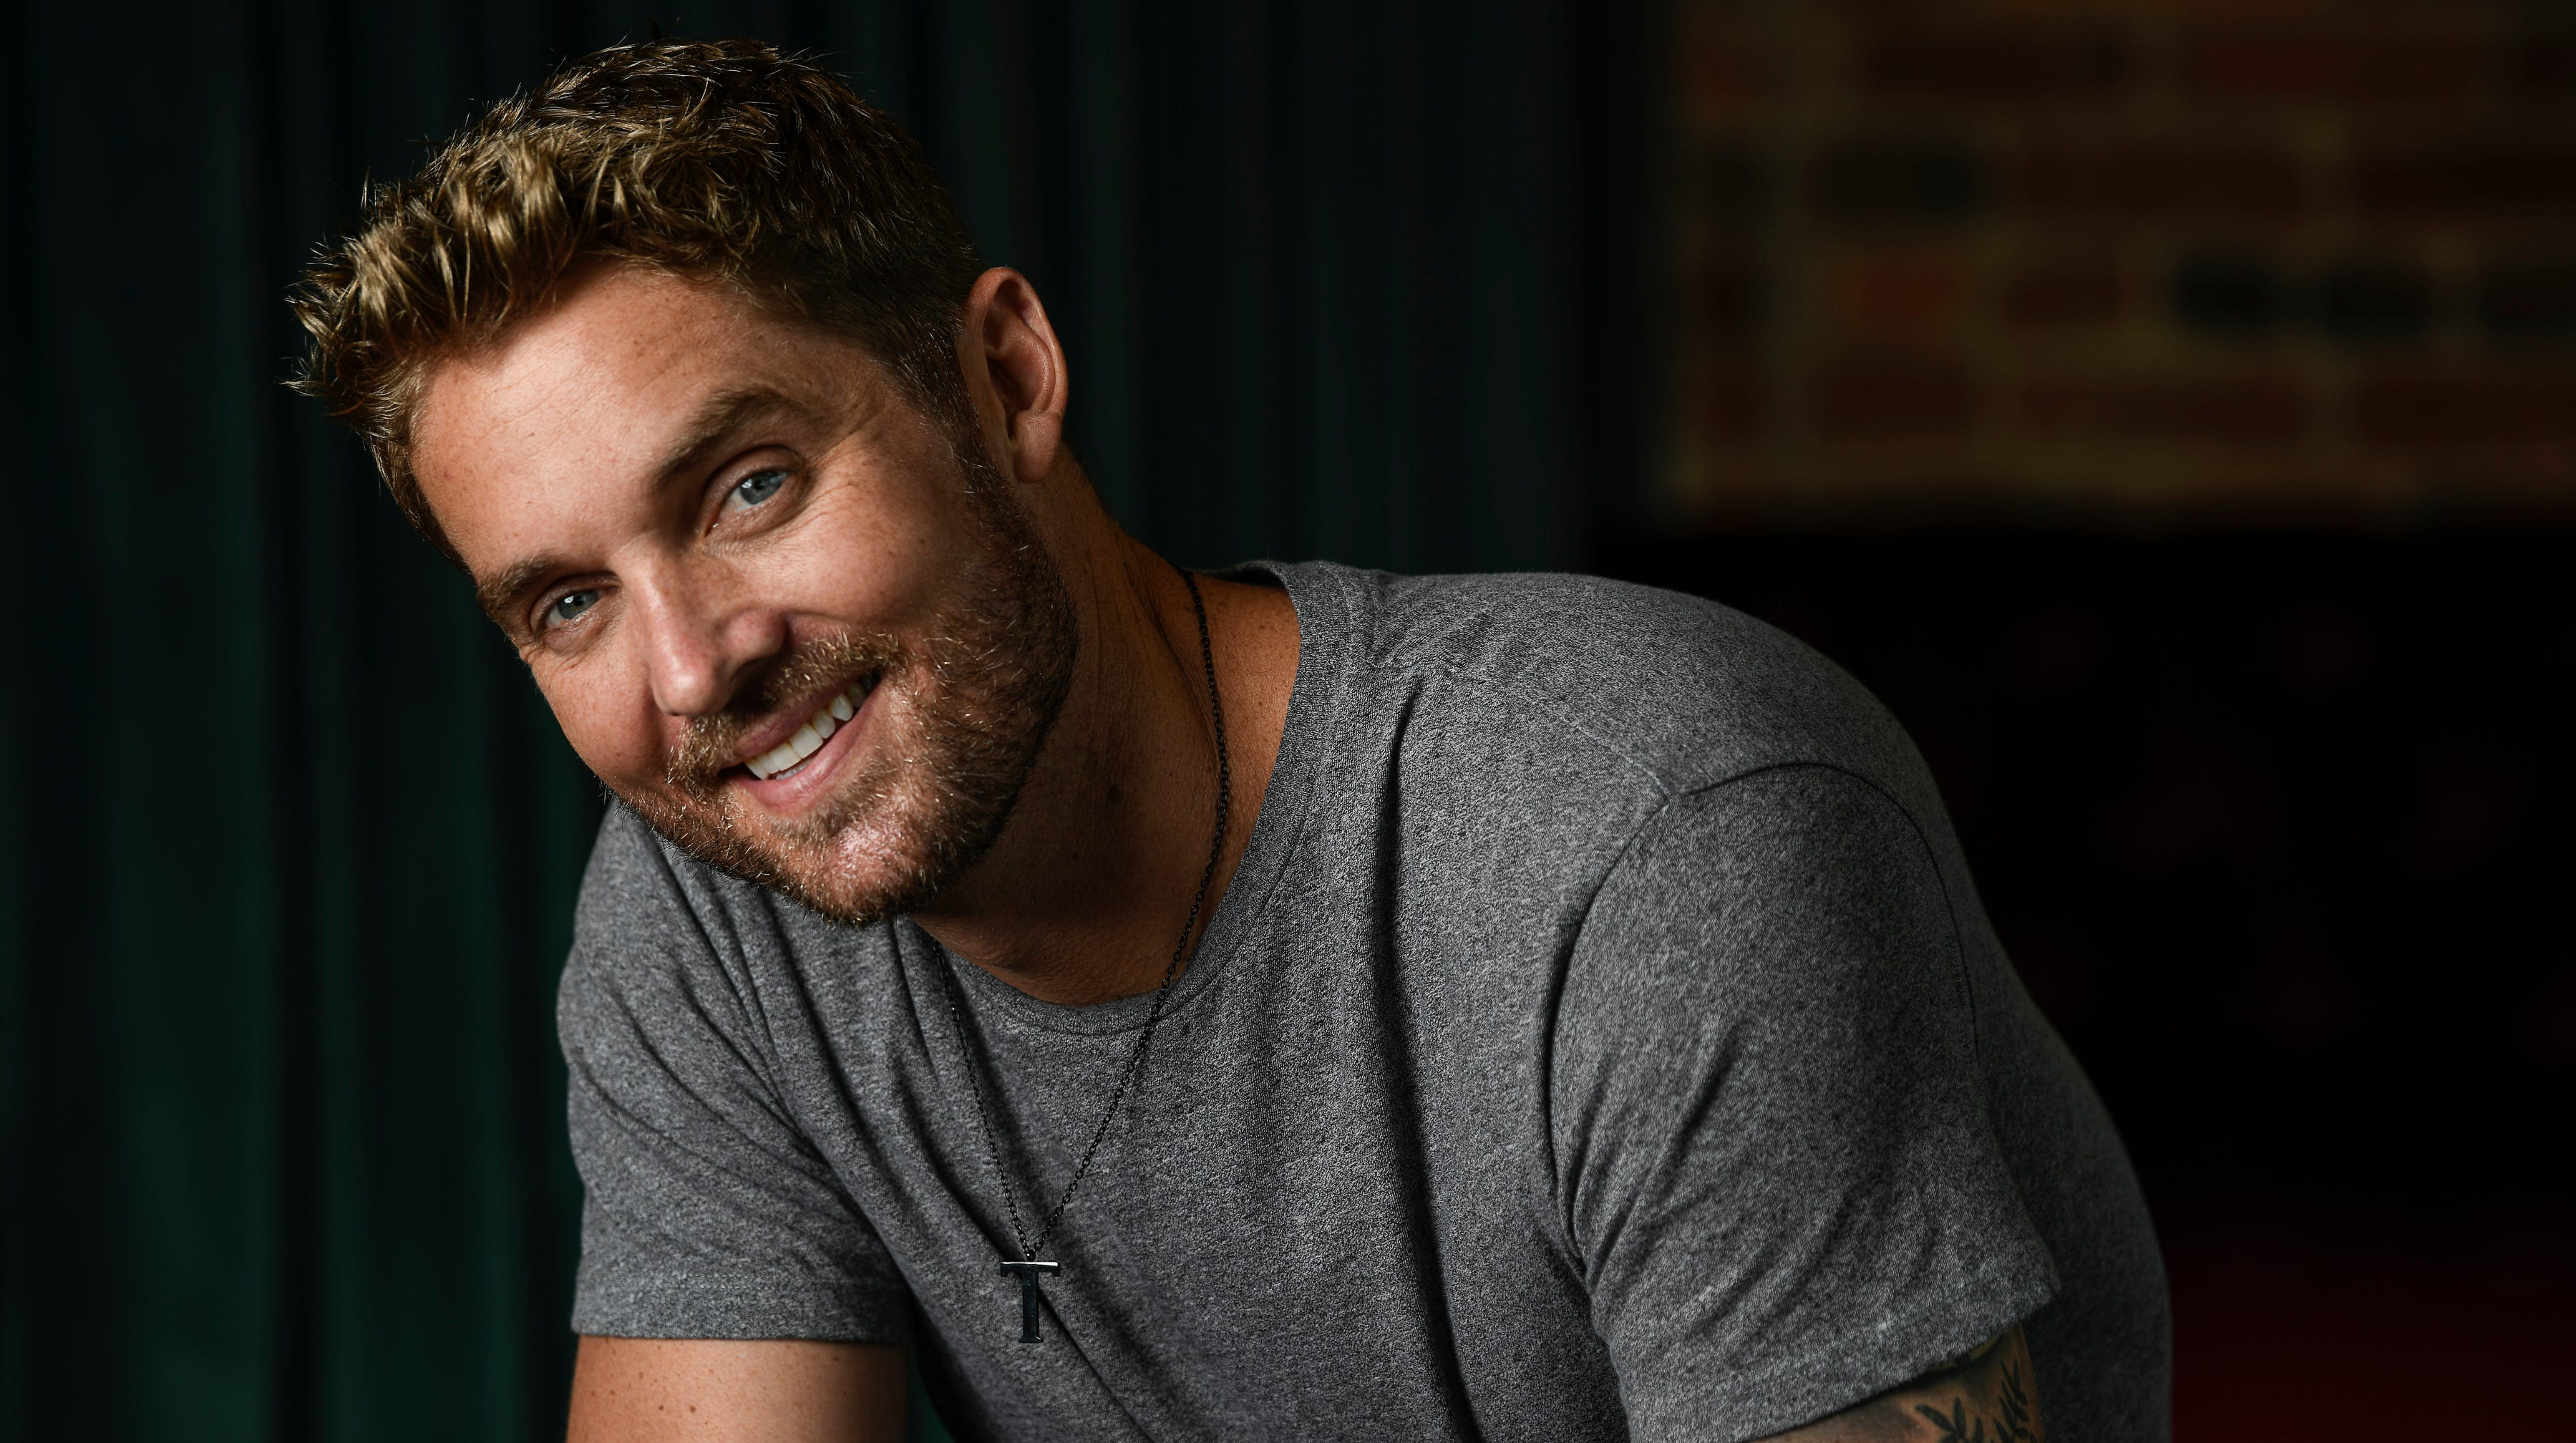 CMA New Artist of the Year nominee: Brett Young talks fitting in, pressure and No. 1 hits